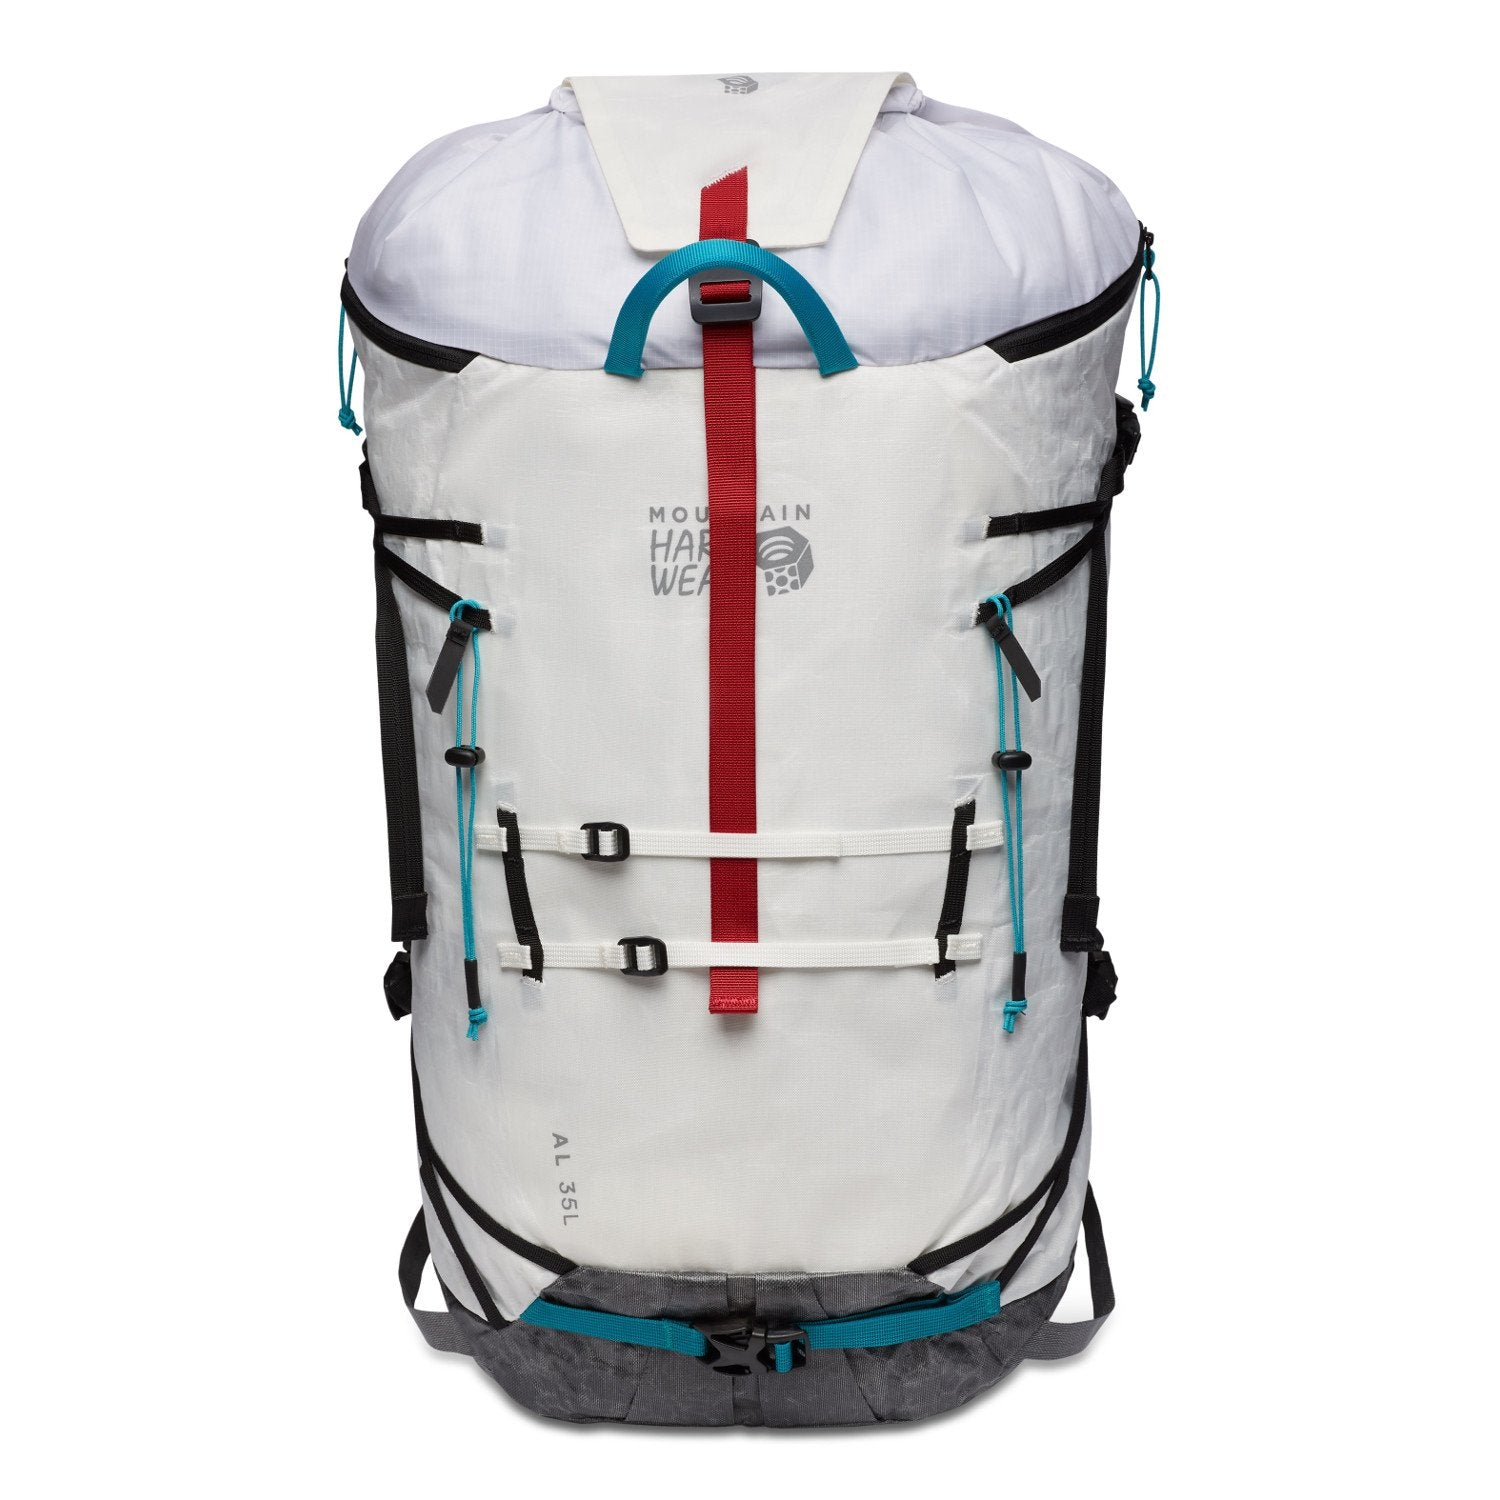 Mountain Hardwear Alpine Light 35L Front view showing the Haul loop and exterior strap features